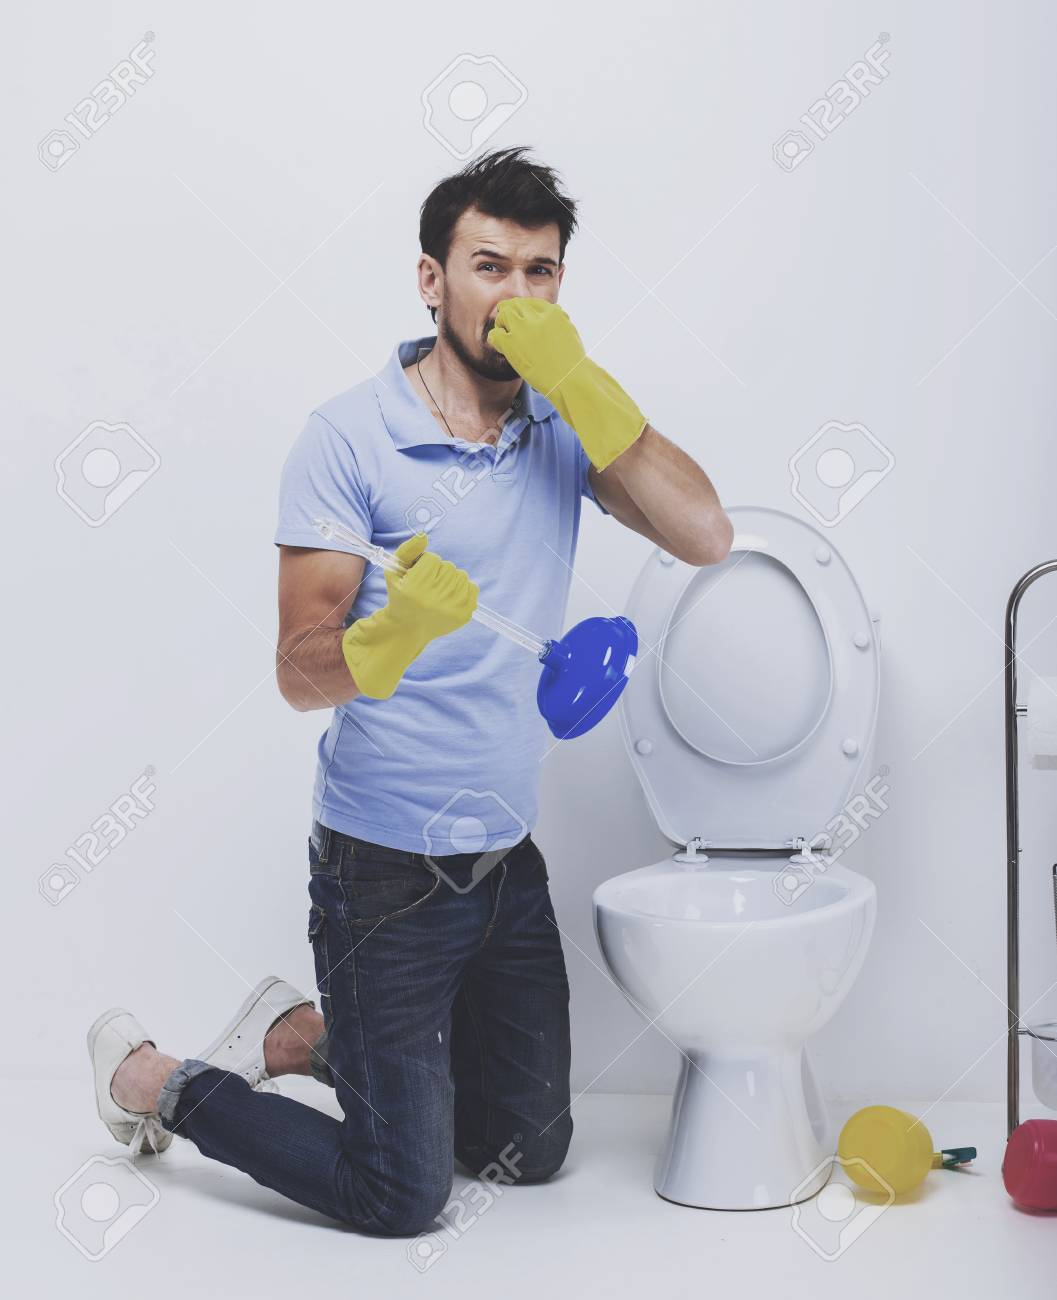 Wondrous Young Man Covering Nose To Avoid Bad Smell While Cleaning Smelly Download Free Architecture Designs Salvmadebymaigaardcom